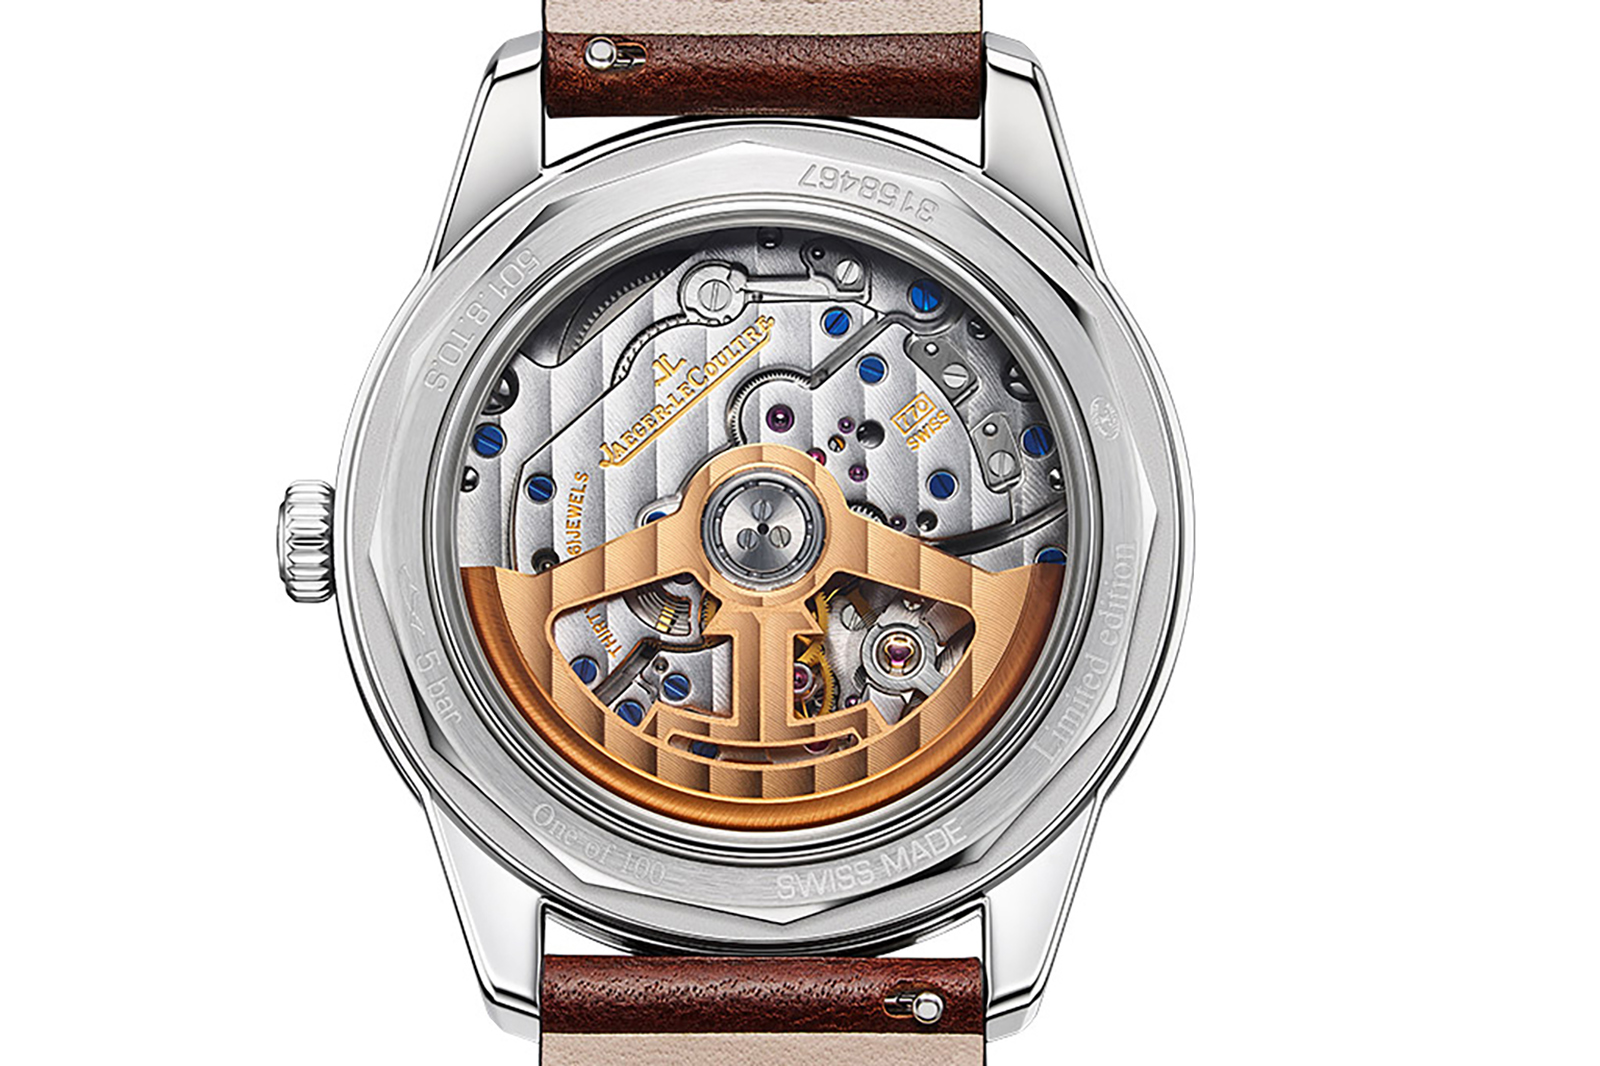 Jaeger-LeCoultre Geophysic True Second Limited Edition 7